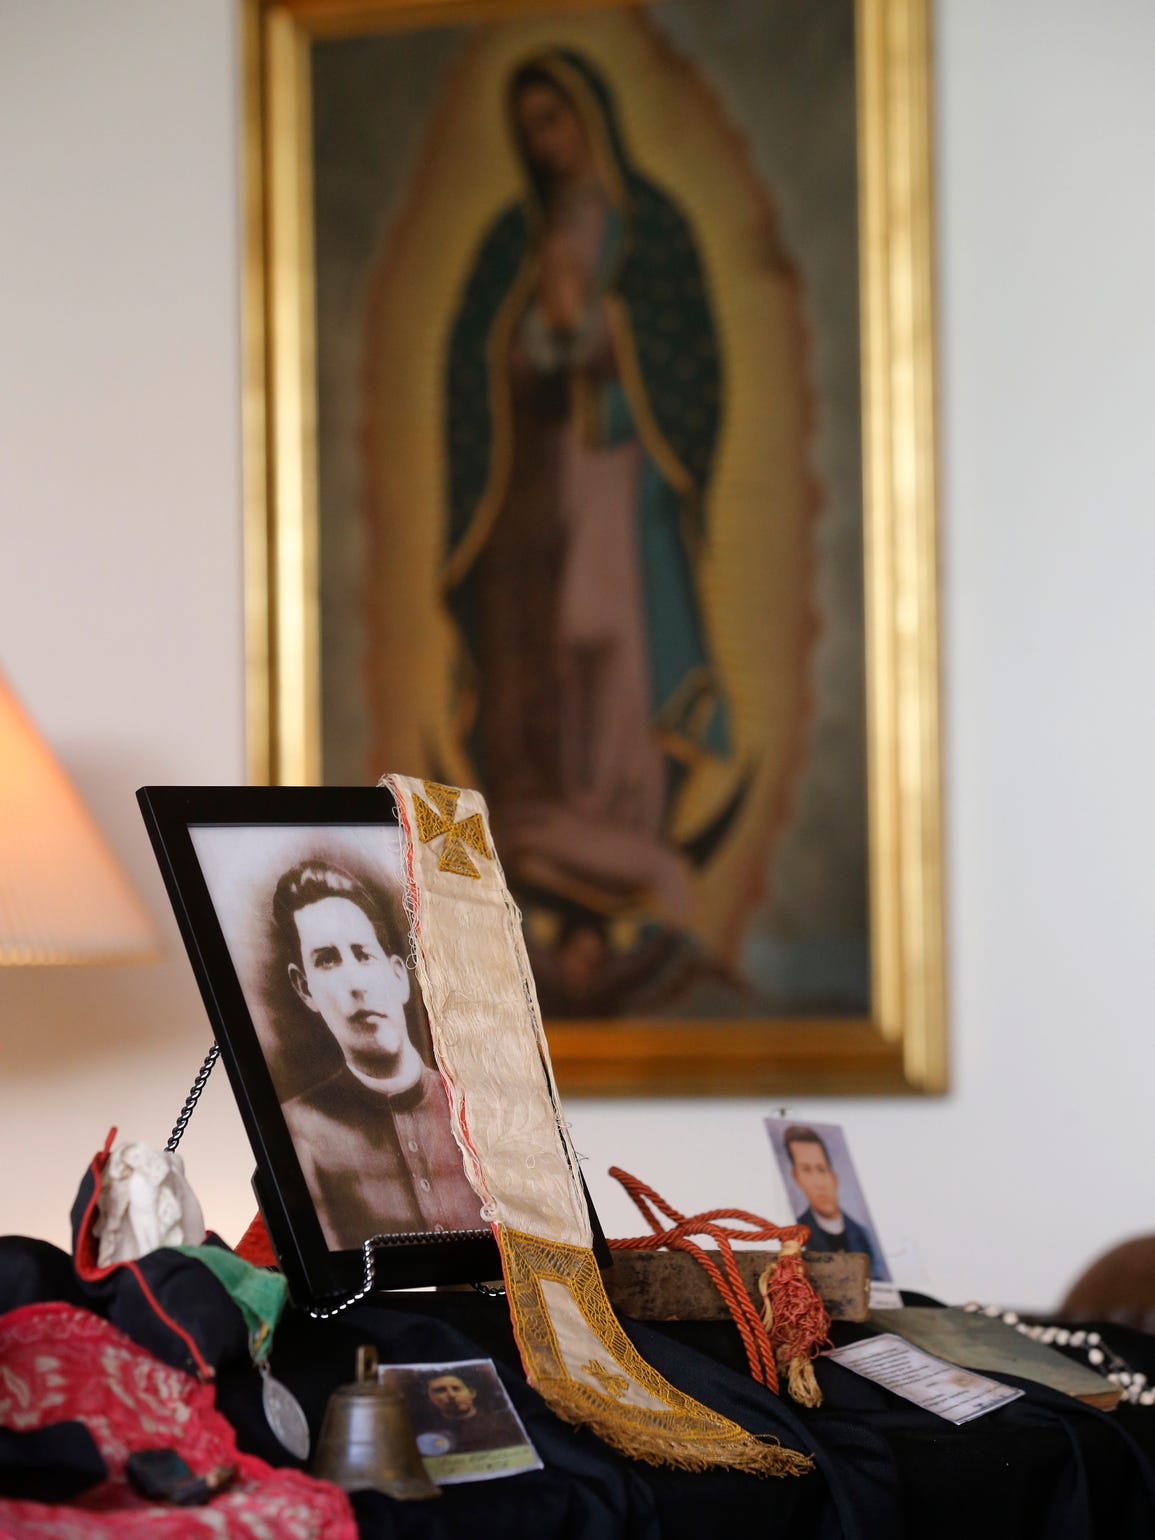 The Catholic Diocese of El Paso has scheduled a celebration